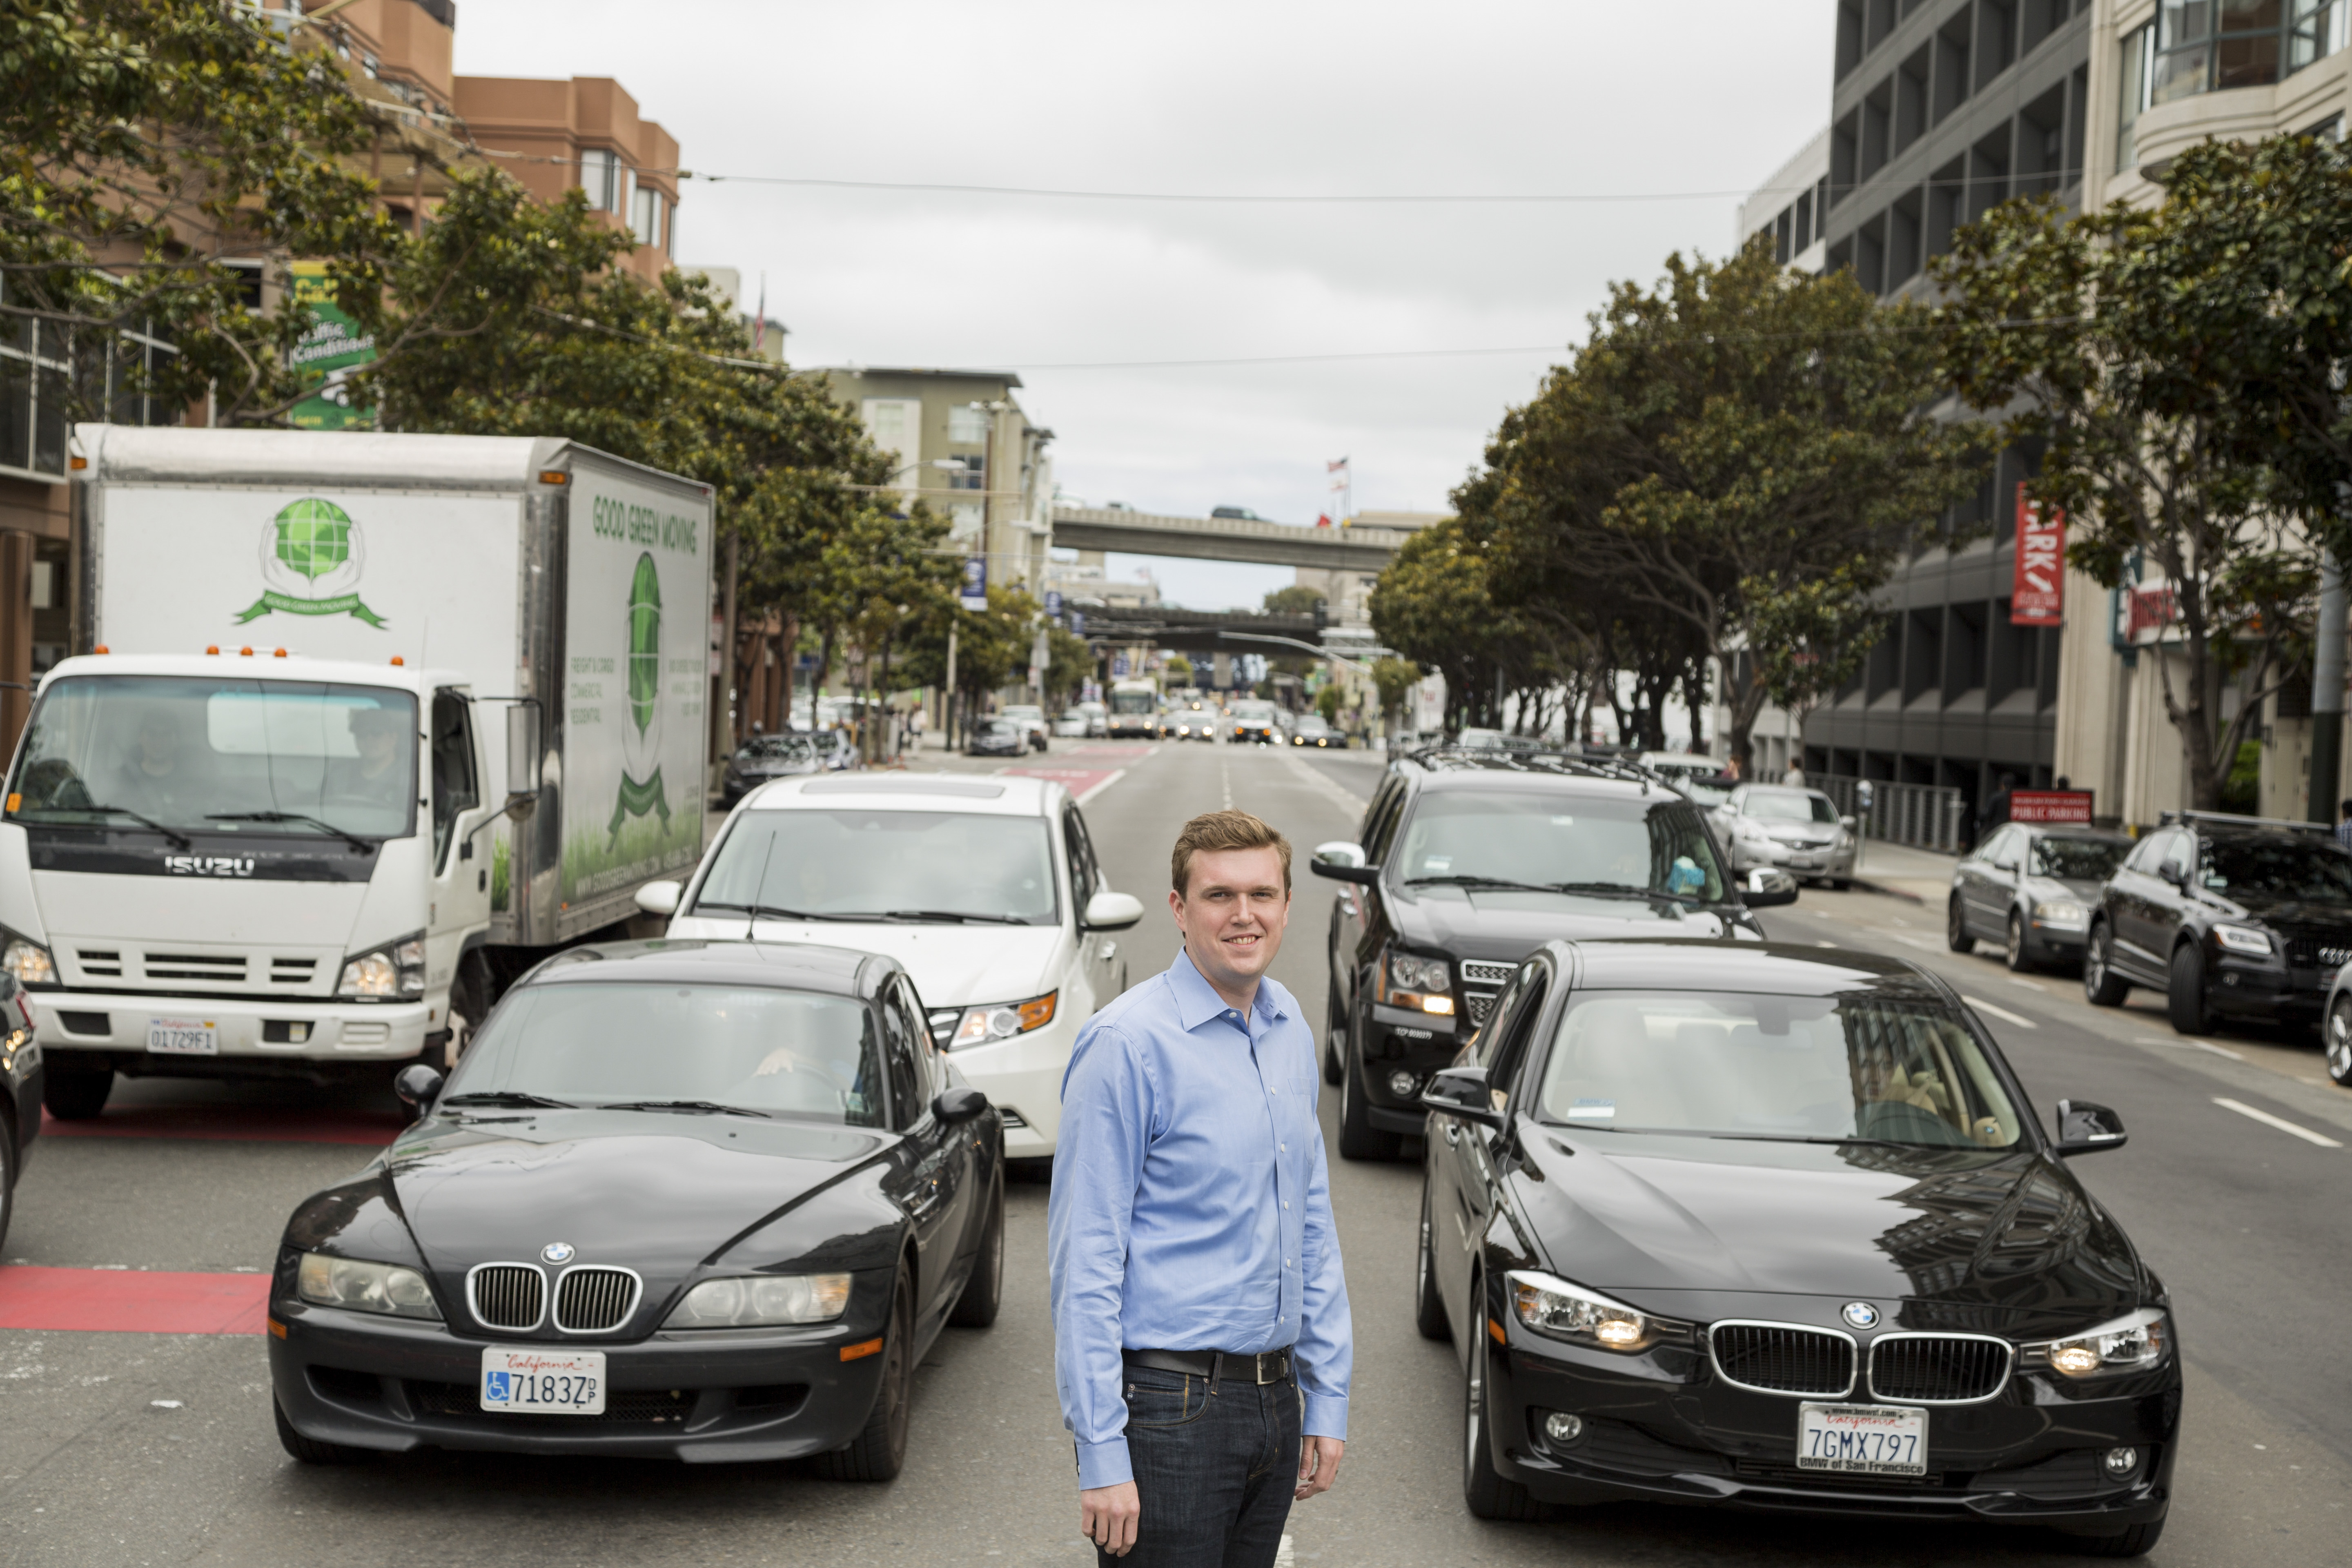 Dan Preston is chief executive of Metromile, an automotive insurer that tracks a vehicle's use with a device. Devices that track driver behavior promise better pricing of insurance premiums, but they raise concerns about privacy.